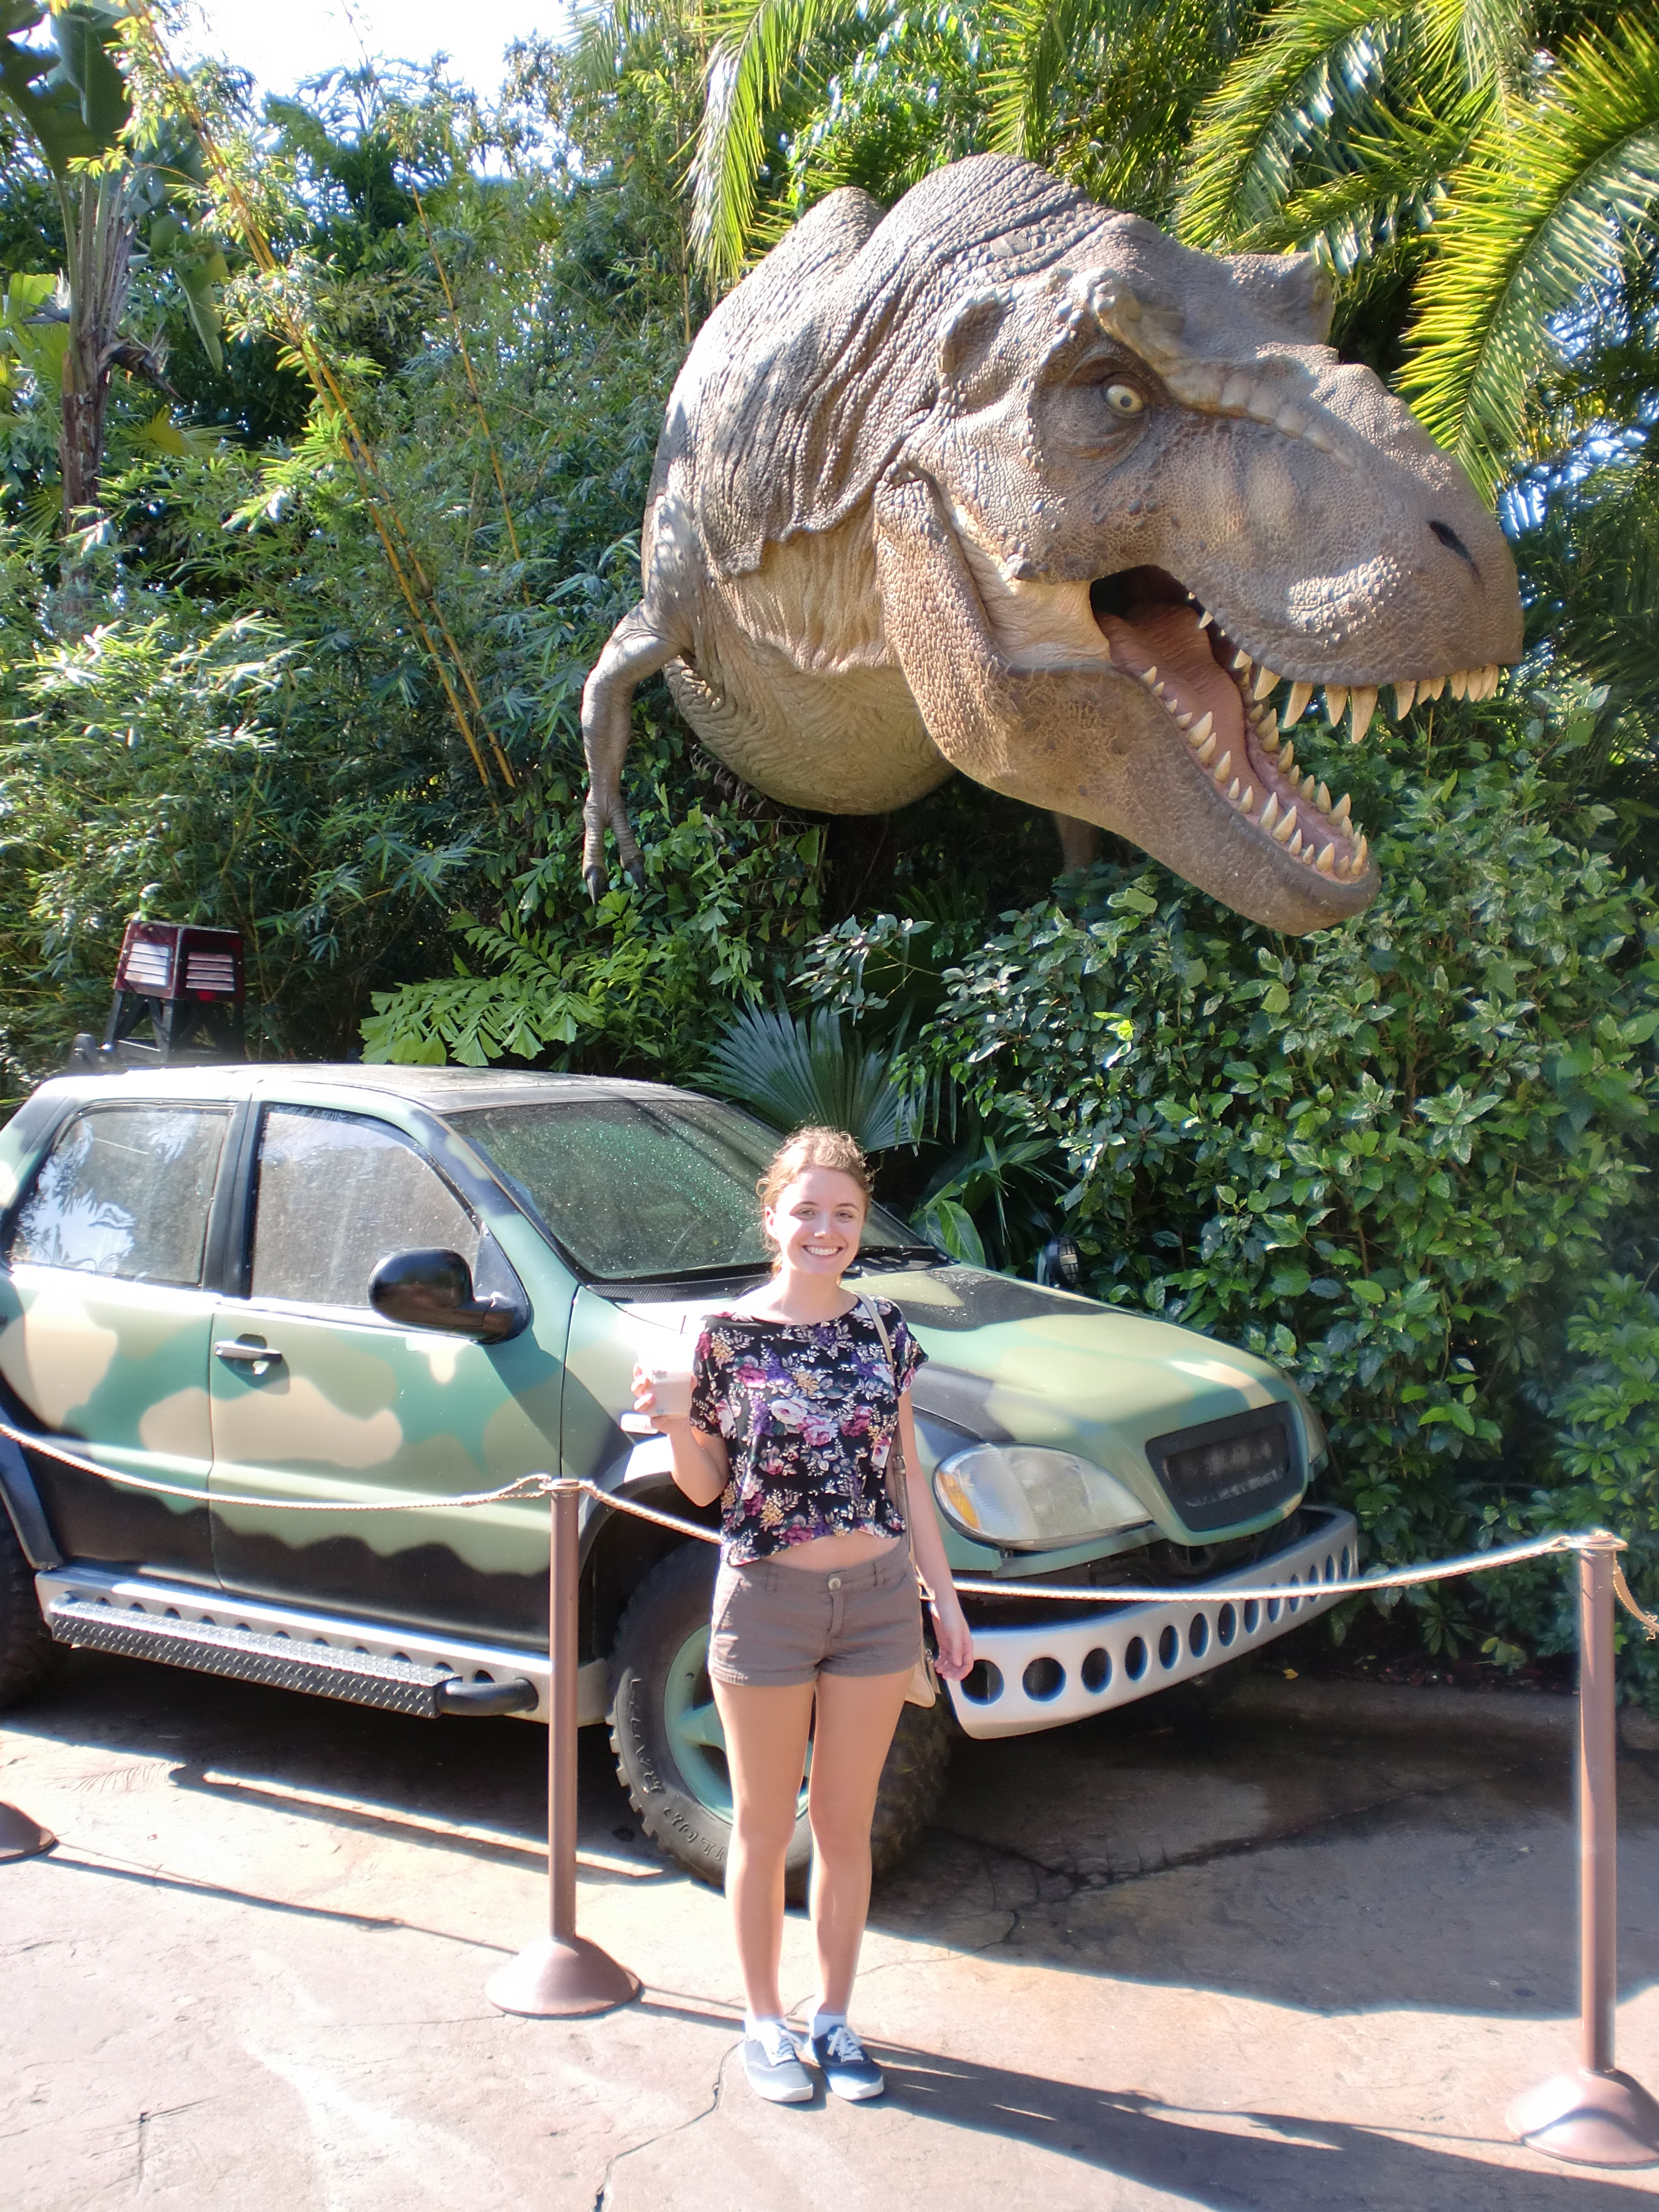 A girl smiles in front of a T-Rex model from Jurassic Park.